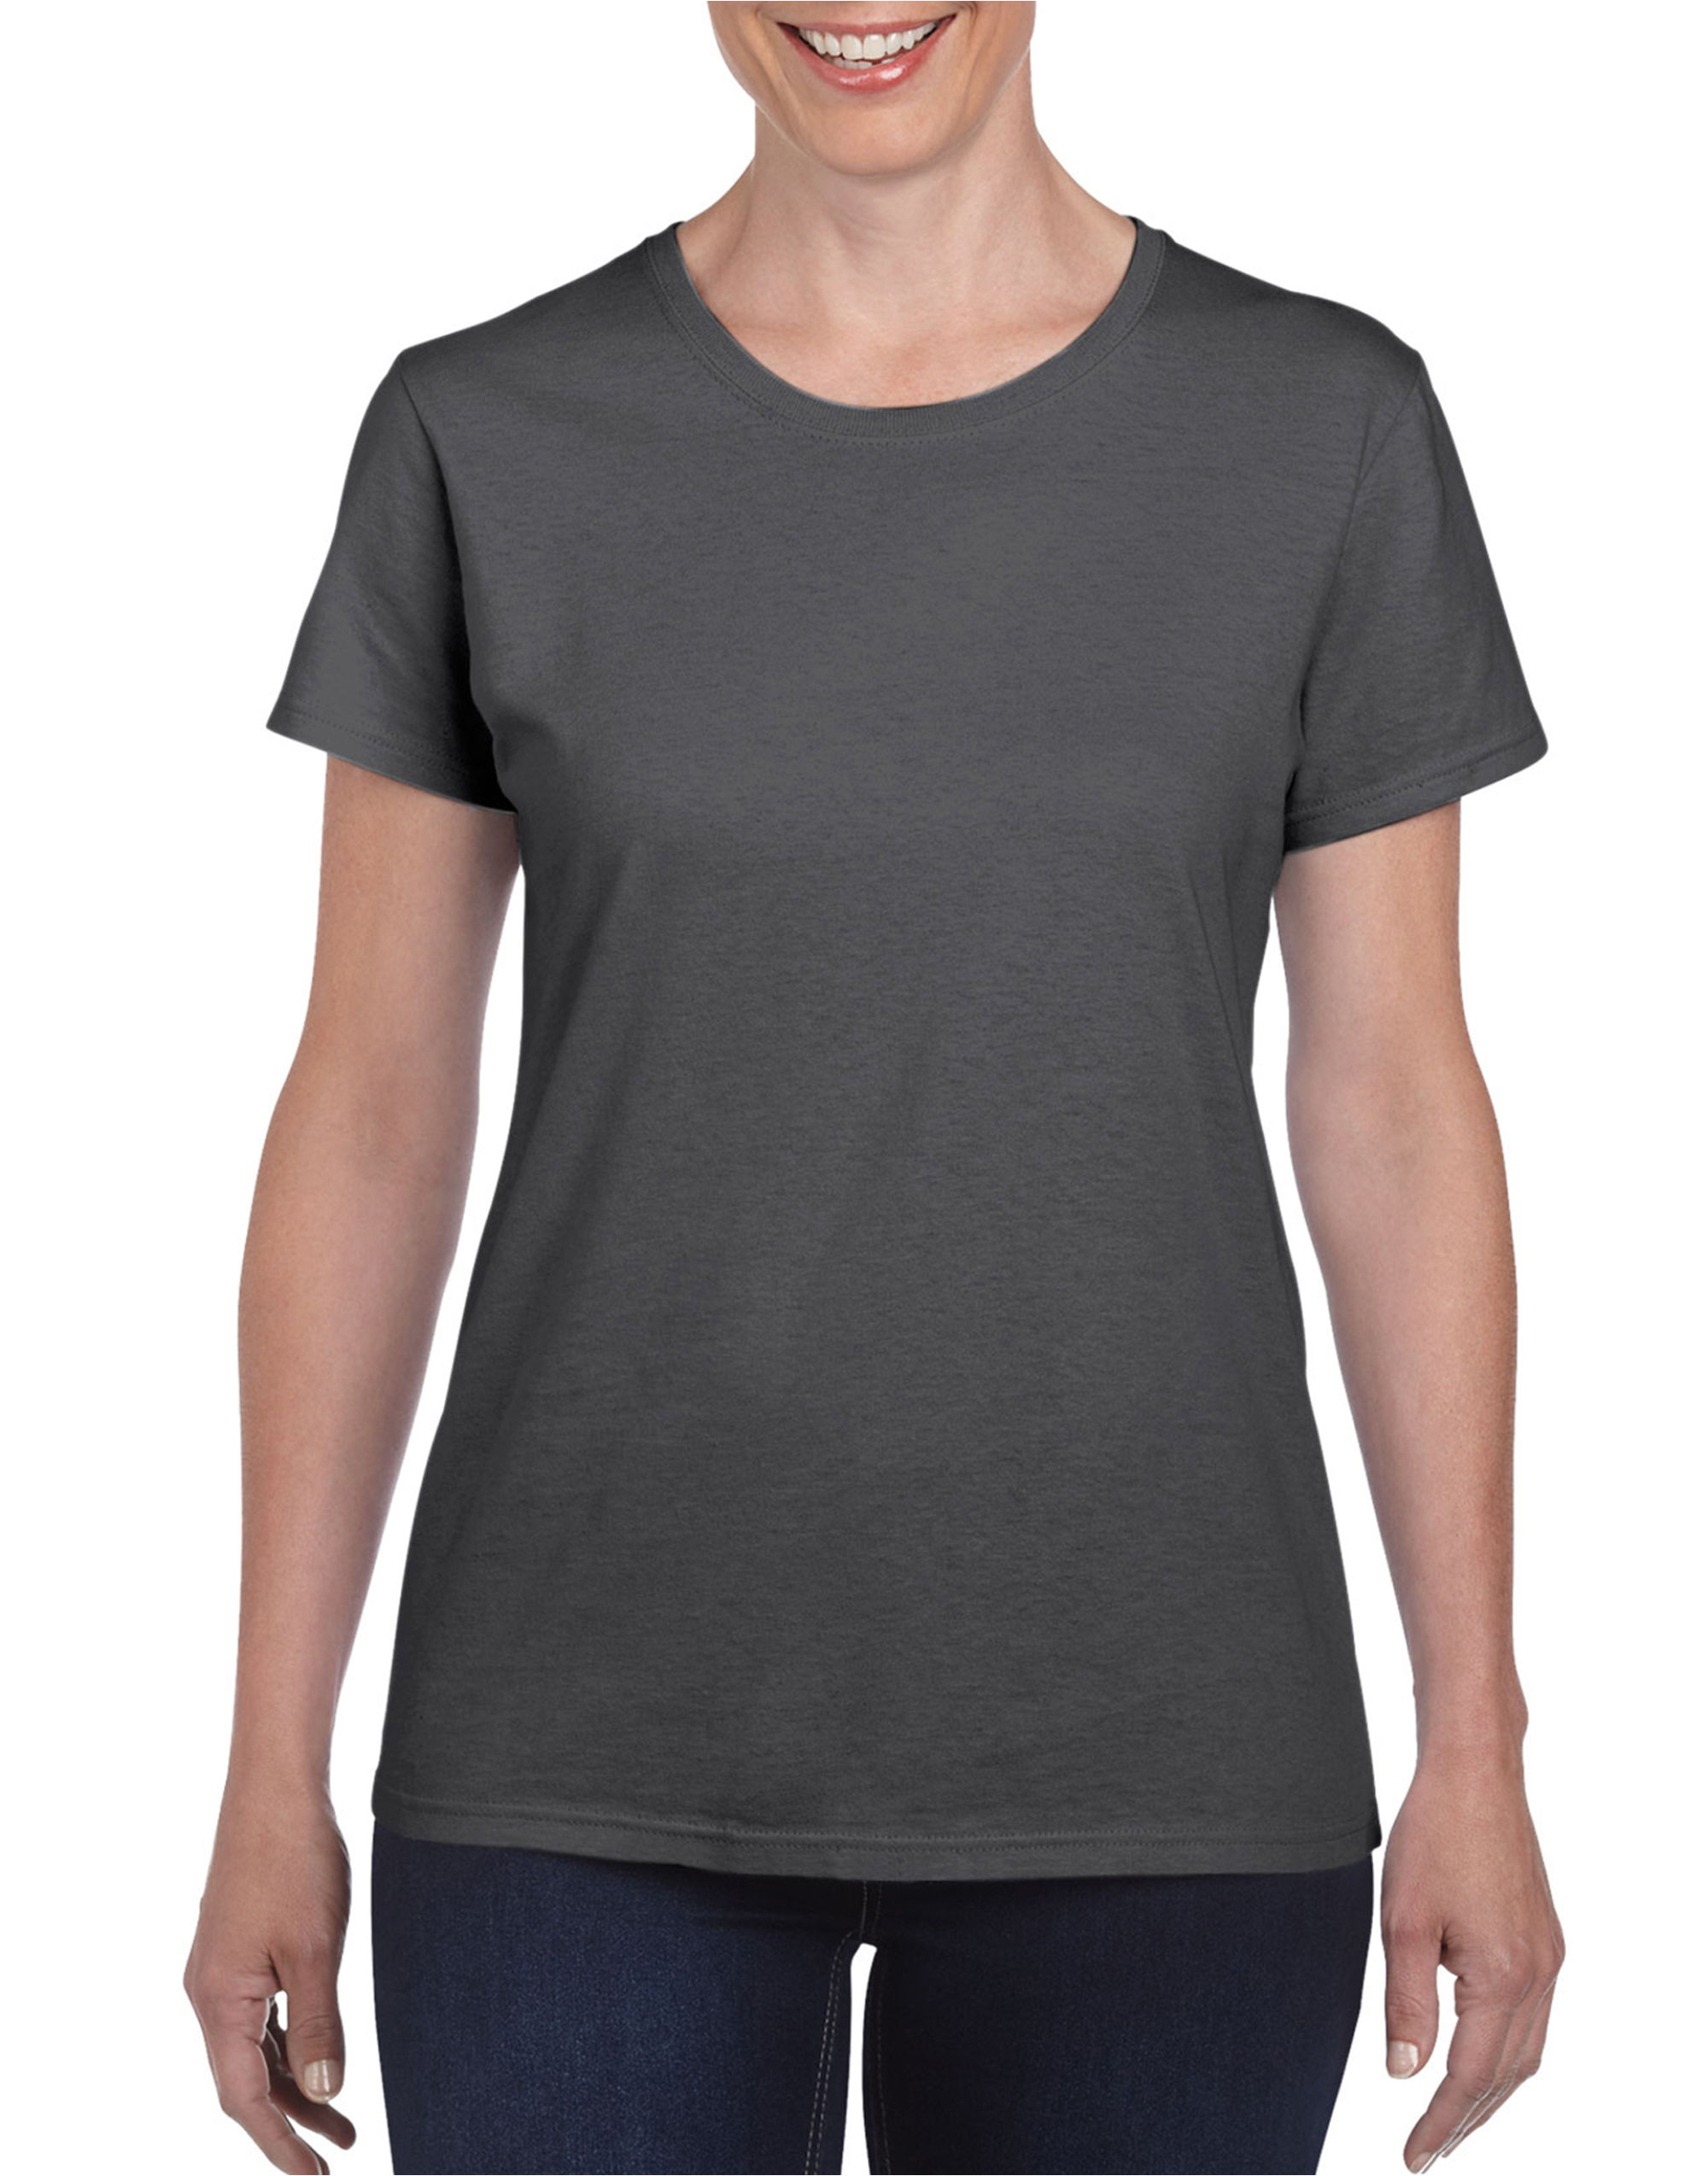 Ladies Heavy Cotton Missy Fit Tee